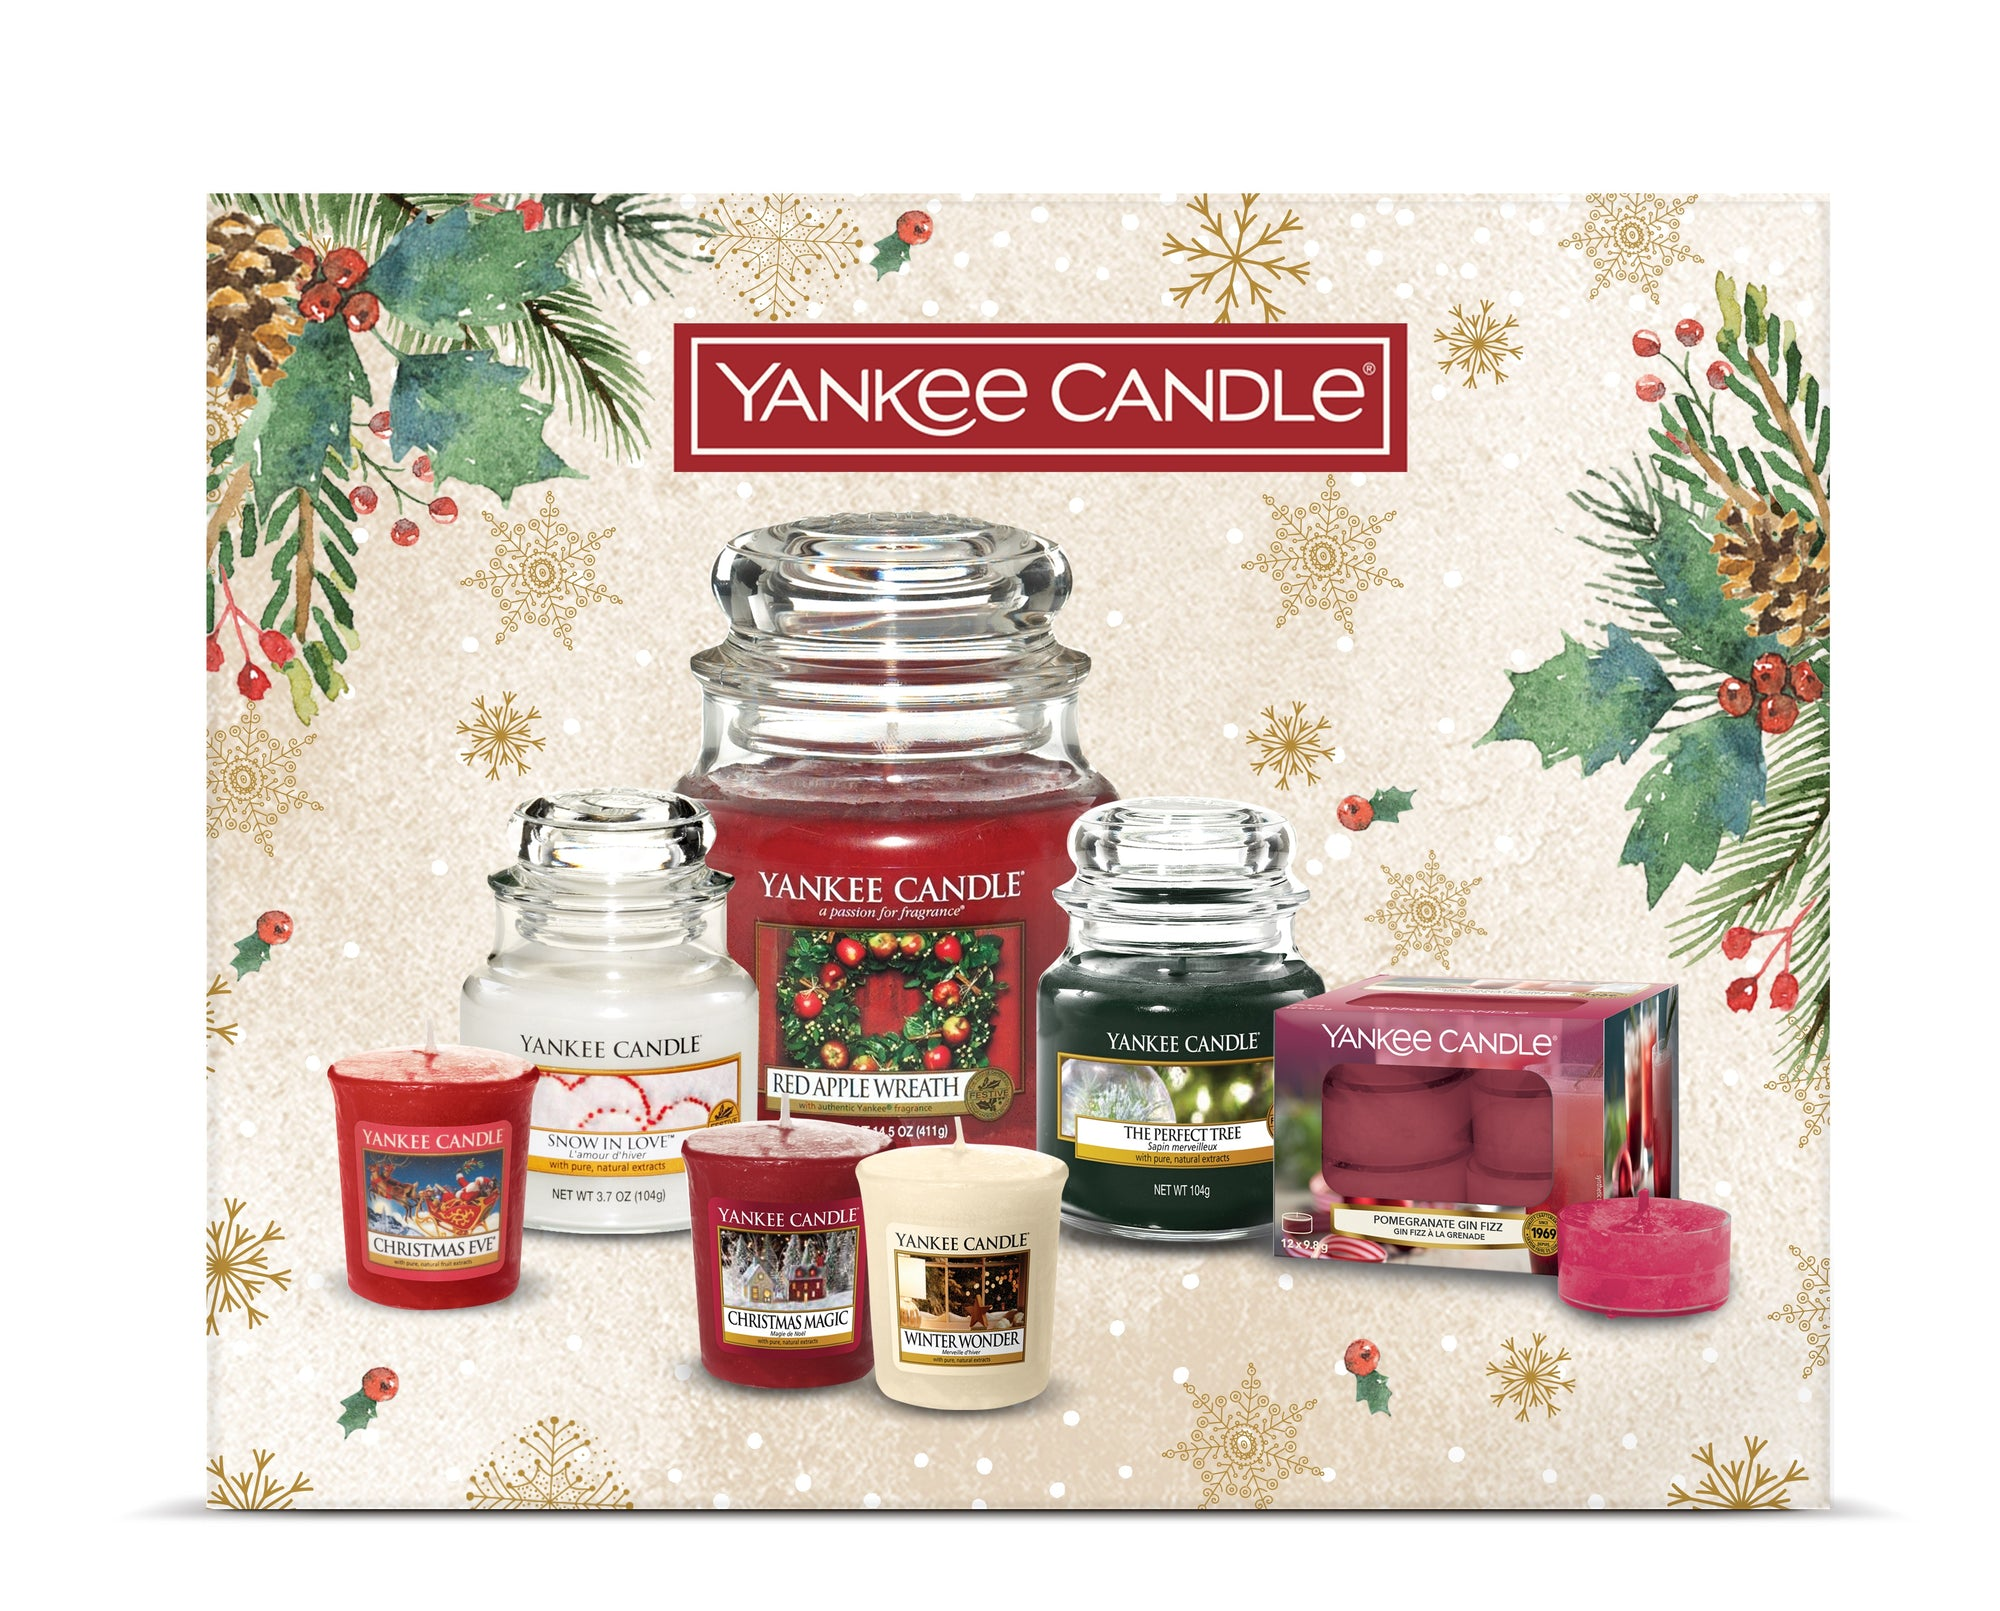 Yankee Candle Christmas WOW Gift set